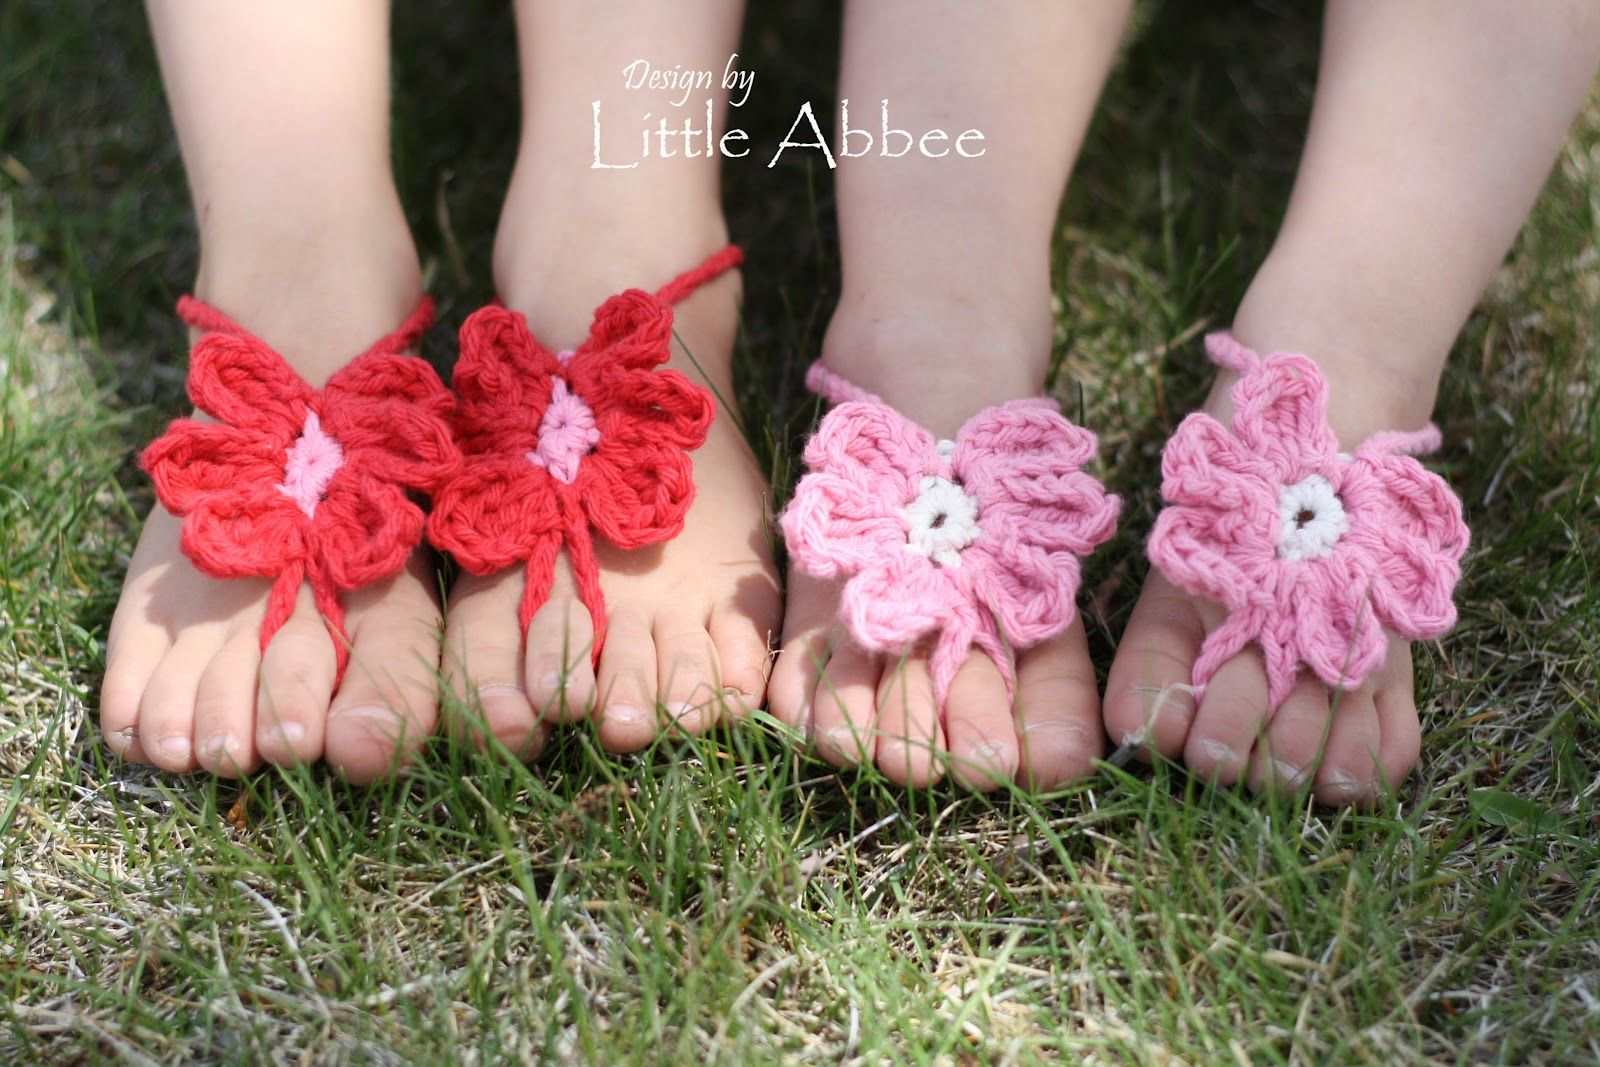 30+ Awesome Crochet Barefoot Sandals Patterns | Barefoot sandals ...